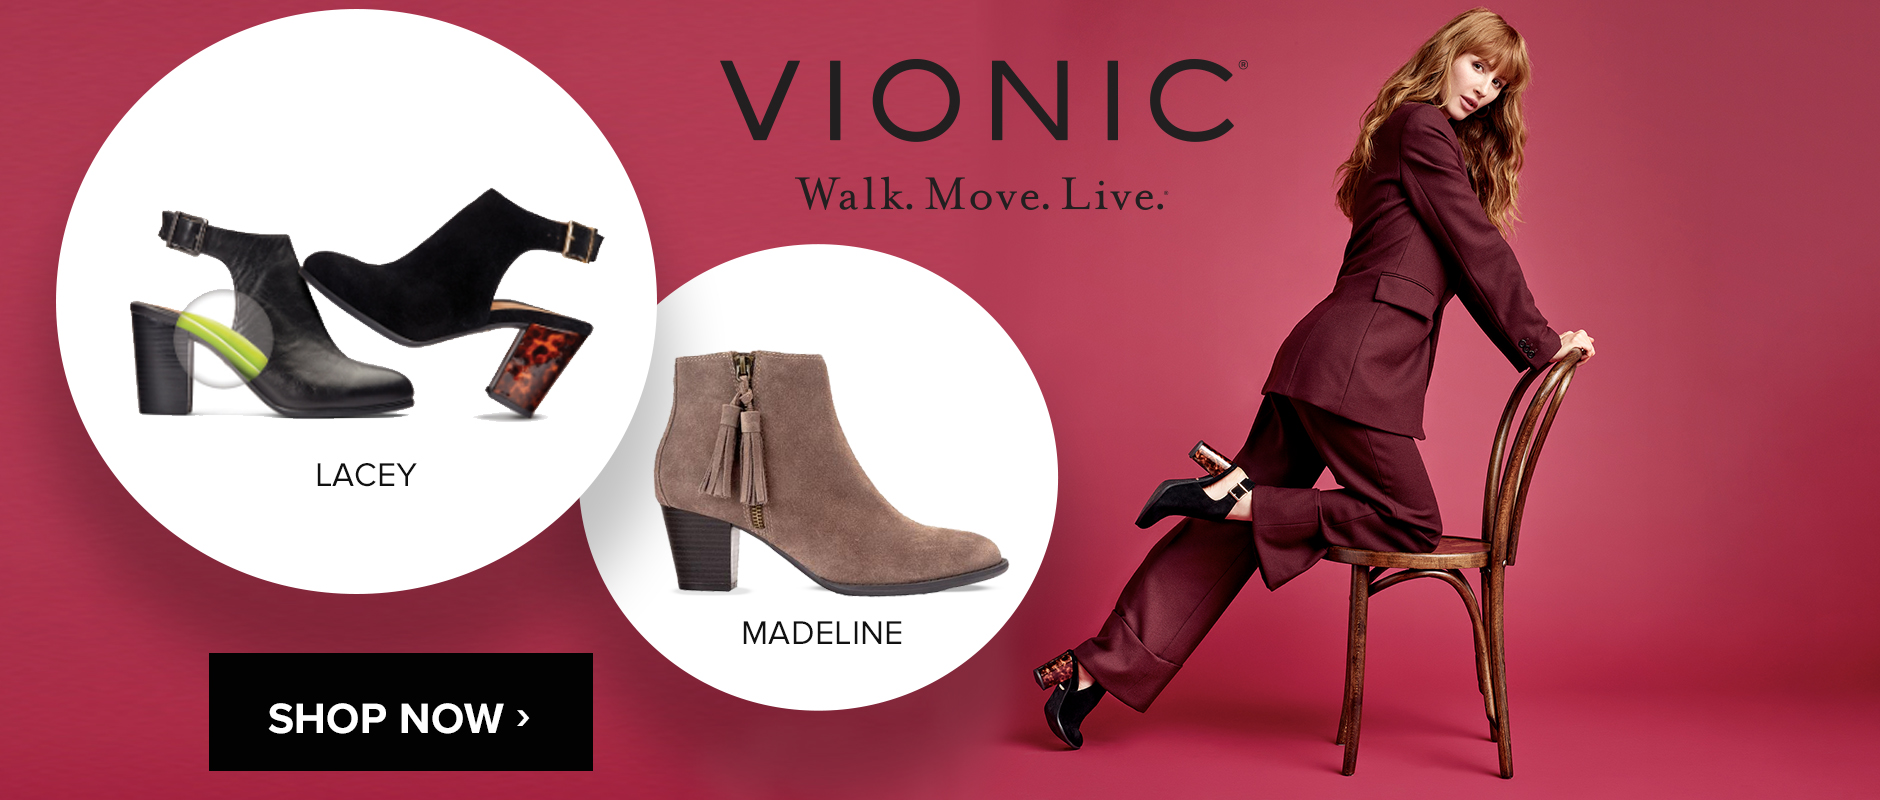 Vionic Shoes New Arrivals